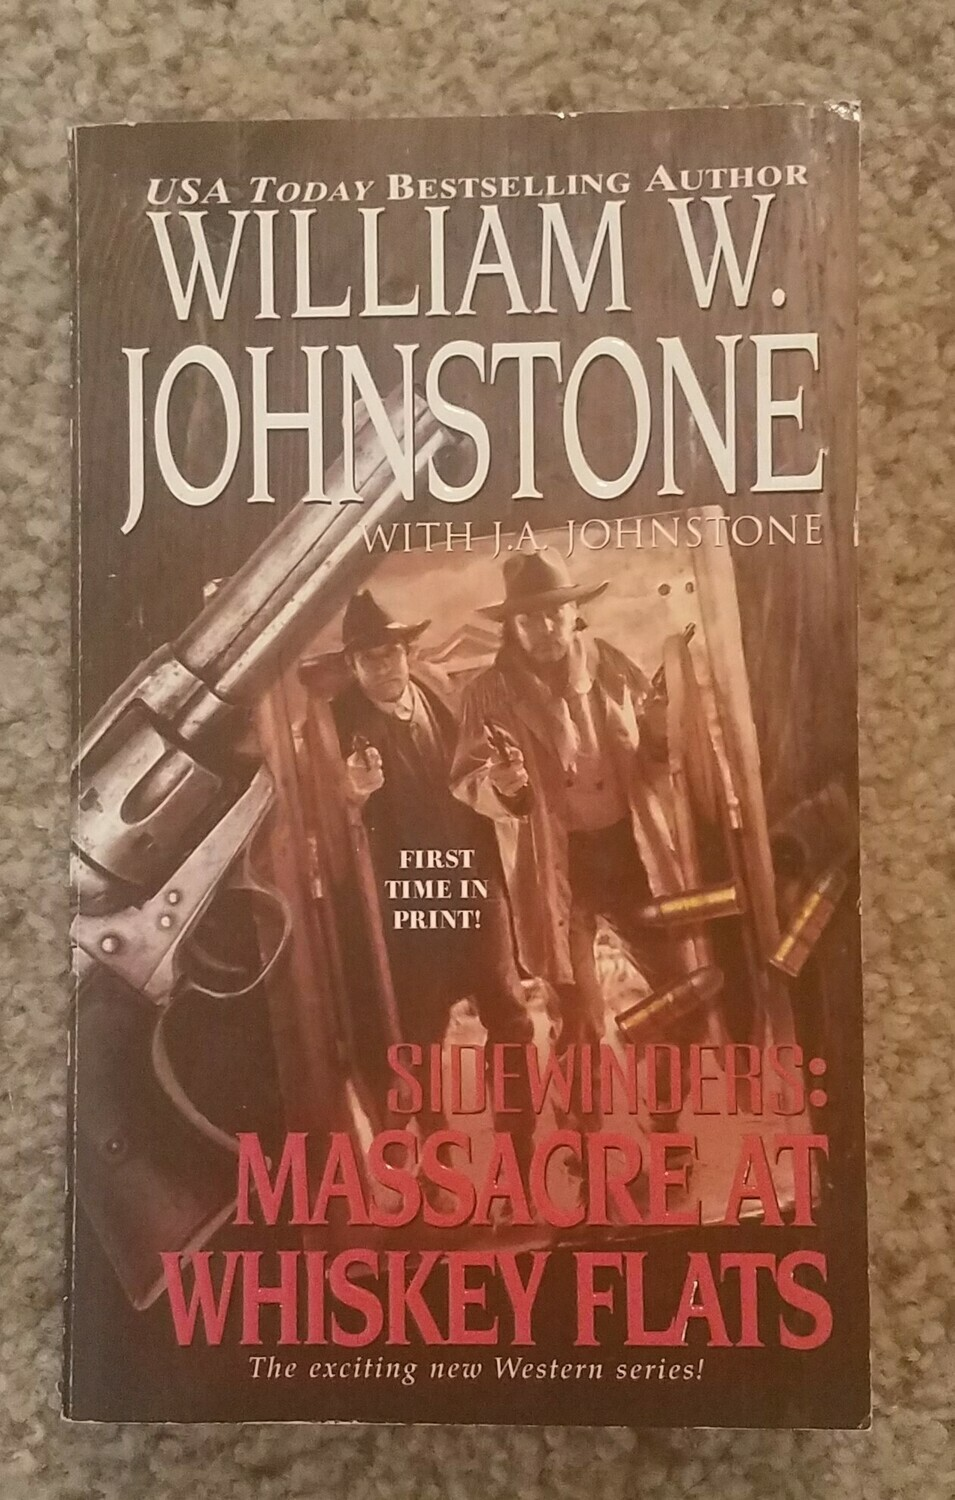 Sidewinders: Massacre at Whiskey Flats by William W. Johnstone with J.A. Johnstone